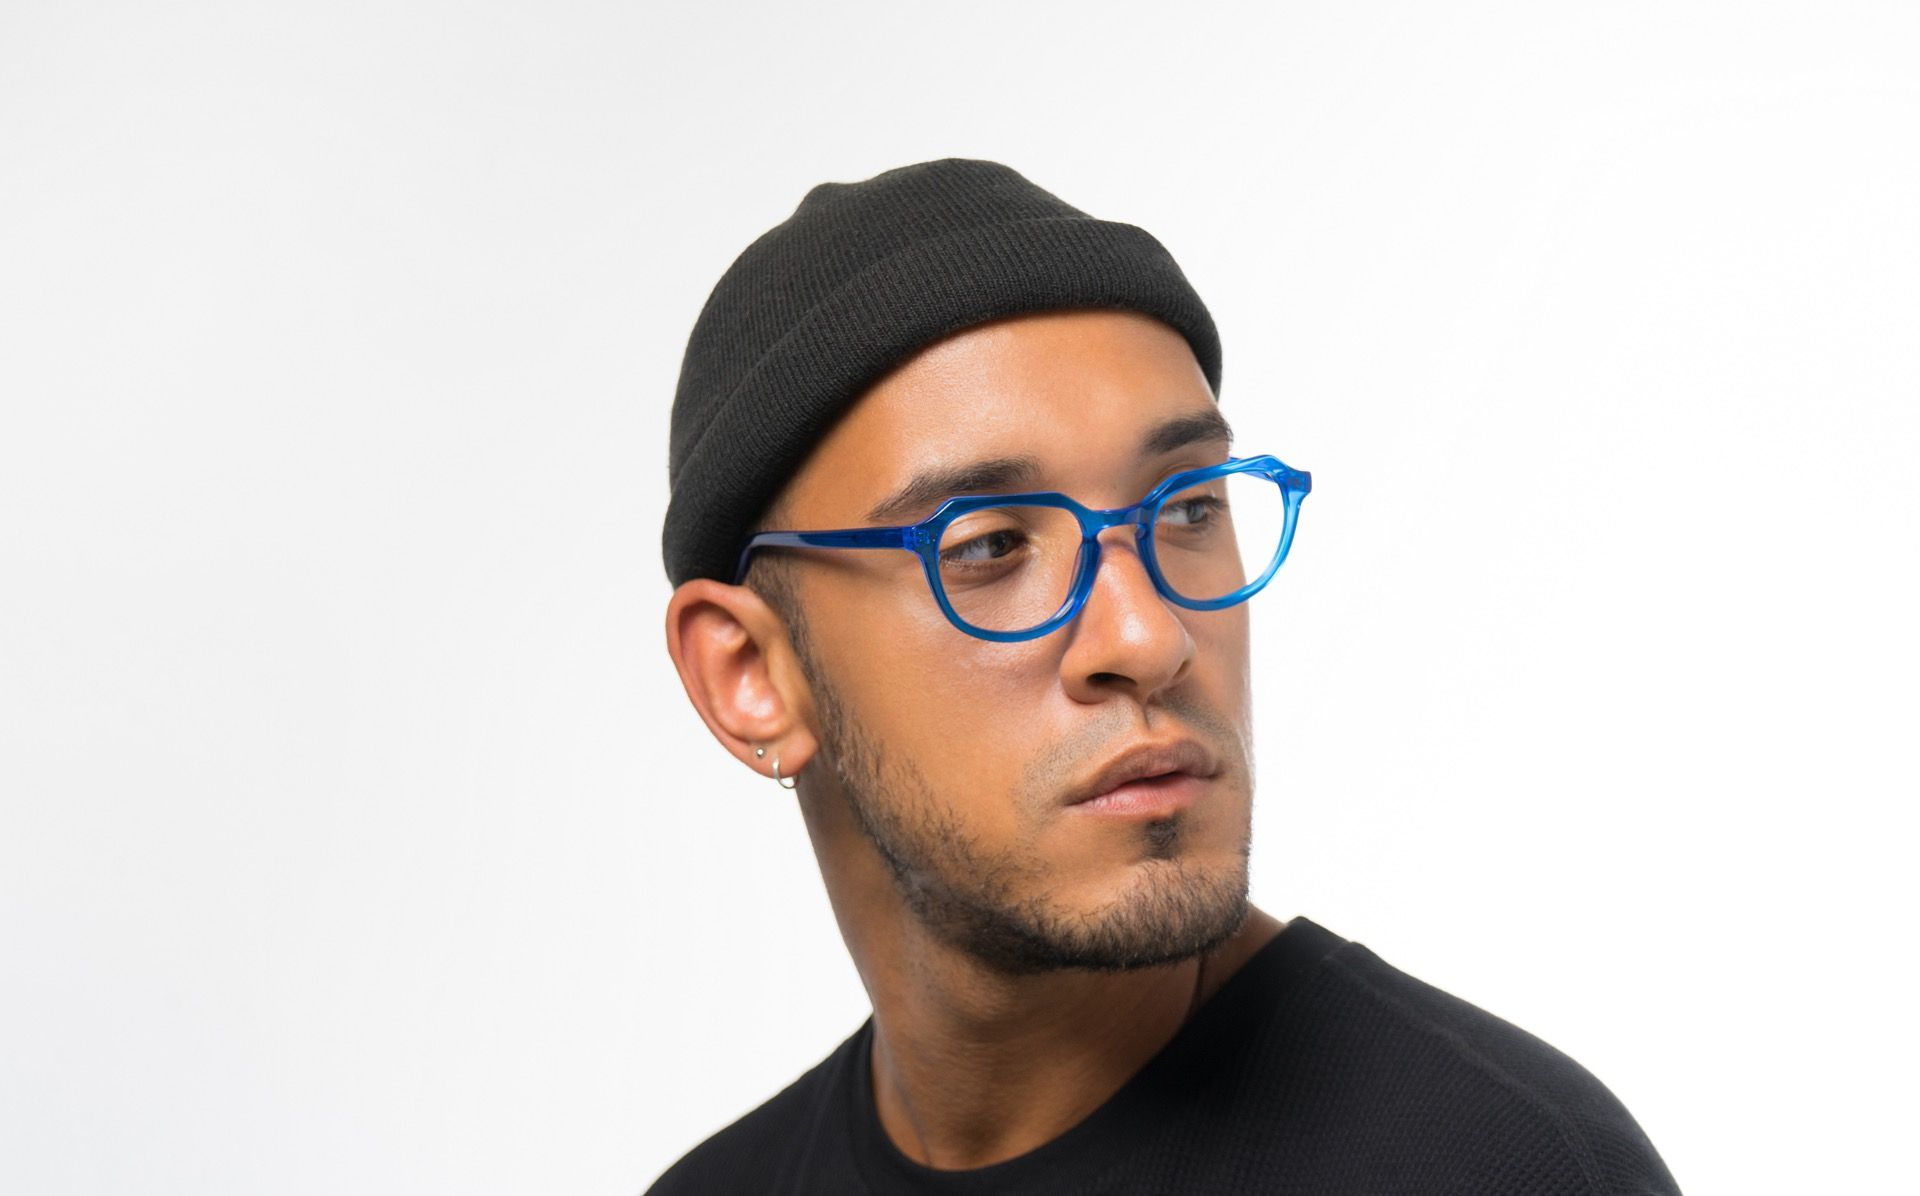 justice blue polette glasses model view 03 crop